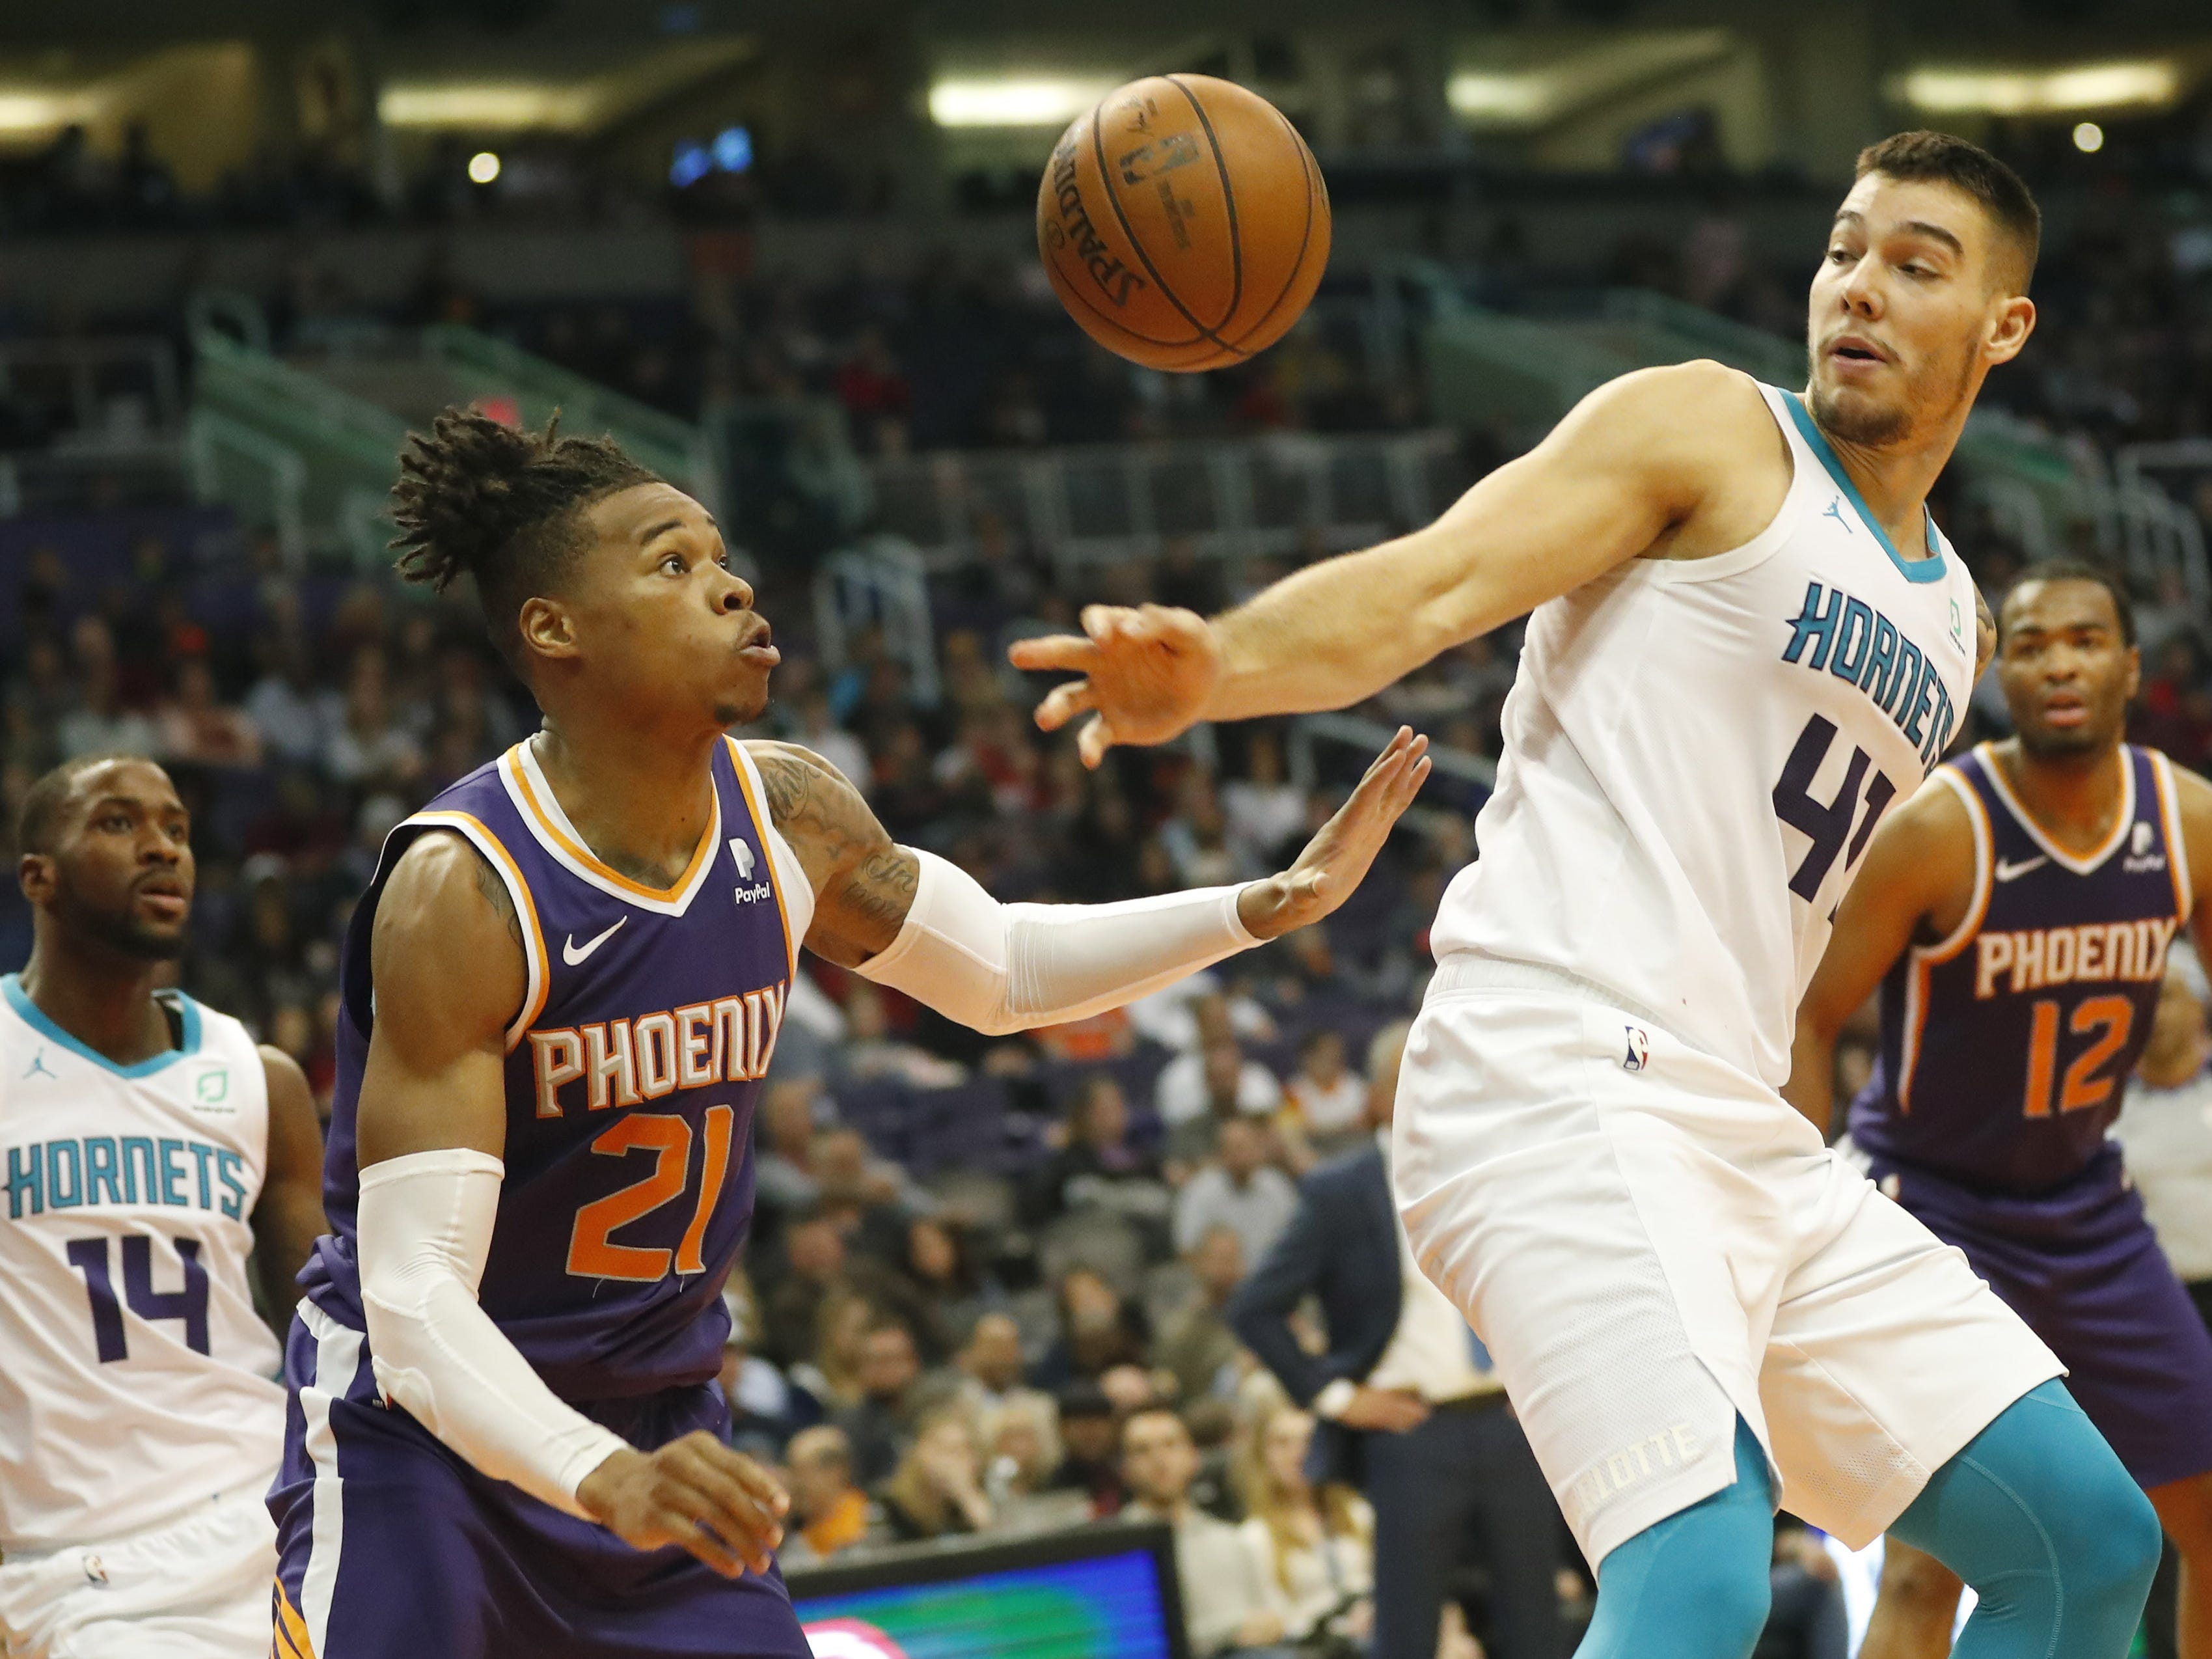 Phoenix Suns forward/center Richaun Holmes (21) deflects the ball away from Charlotte Hornets center Willy Hernangomez (41)\ during the third quarter in Phoenix January 6, 2019.